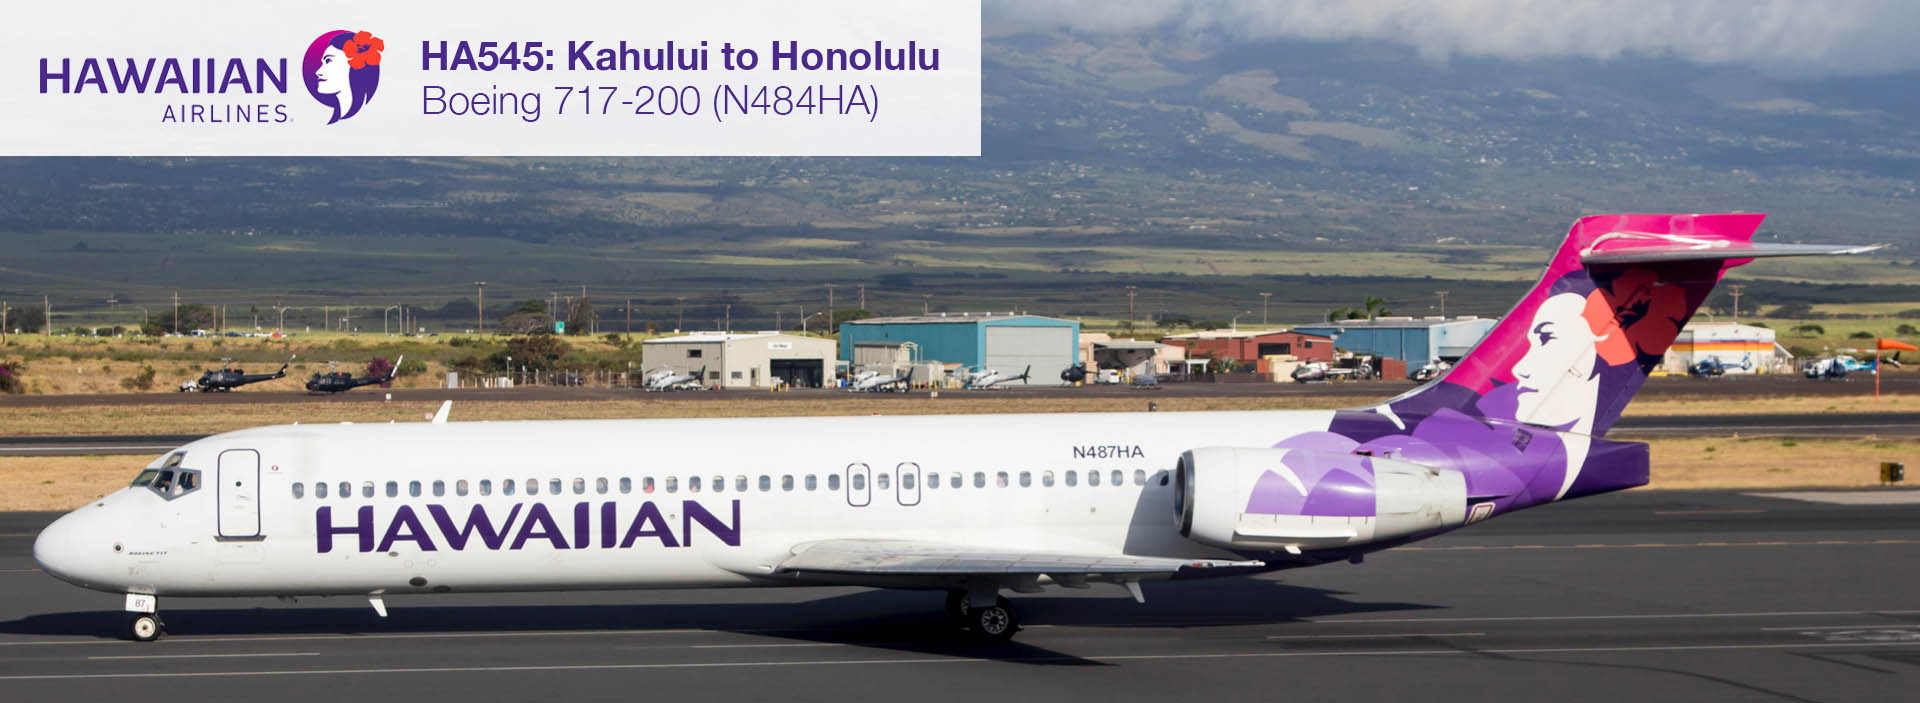 Hawaiian Airlines 717 Economy Class Kahului to Honolulu Flight Review